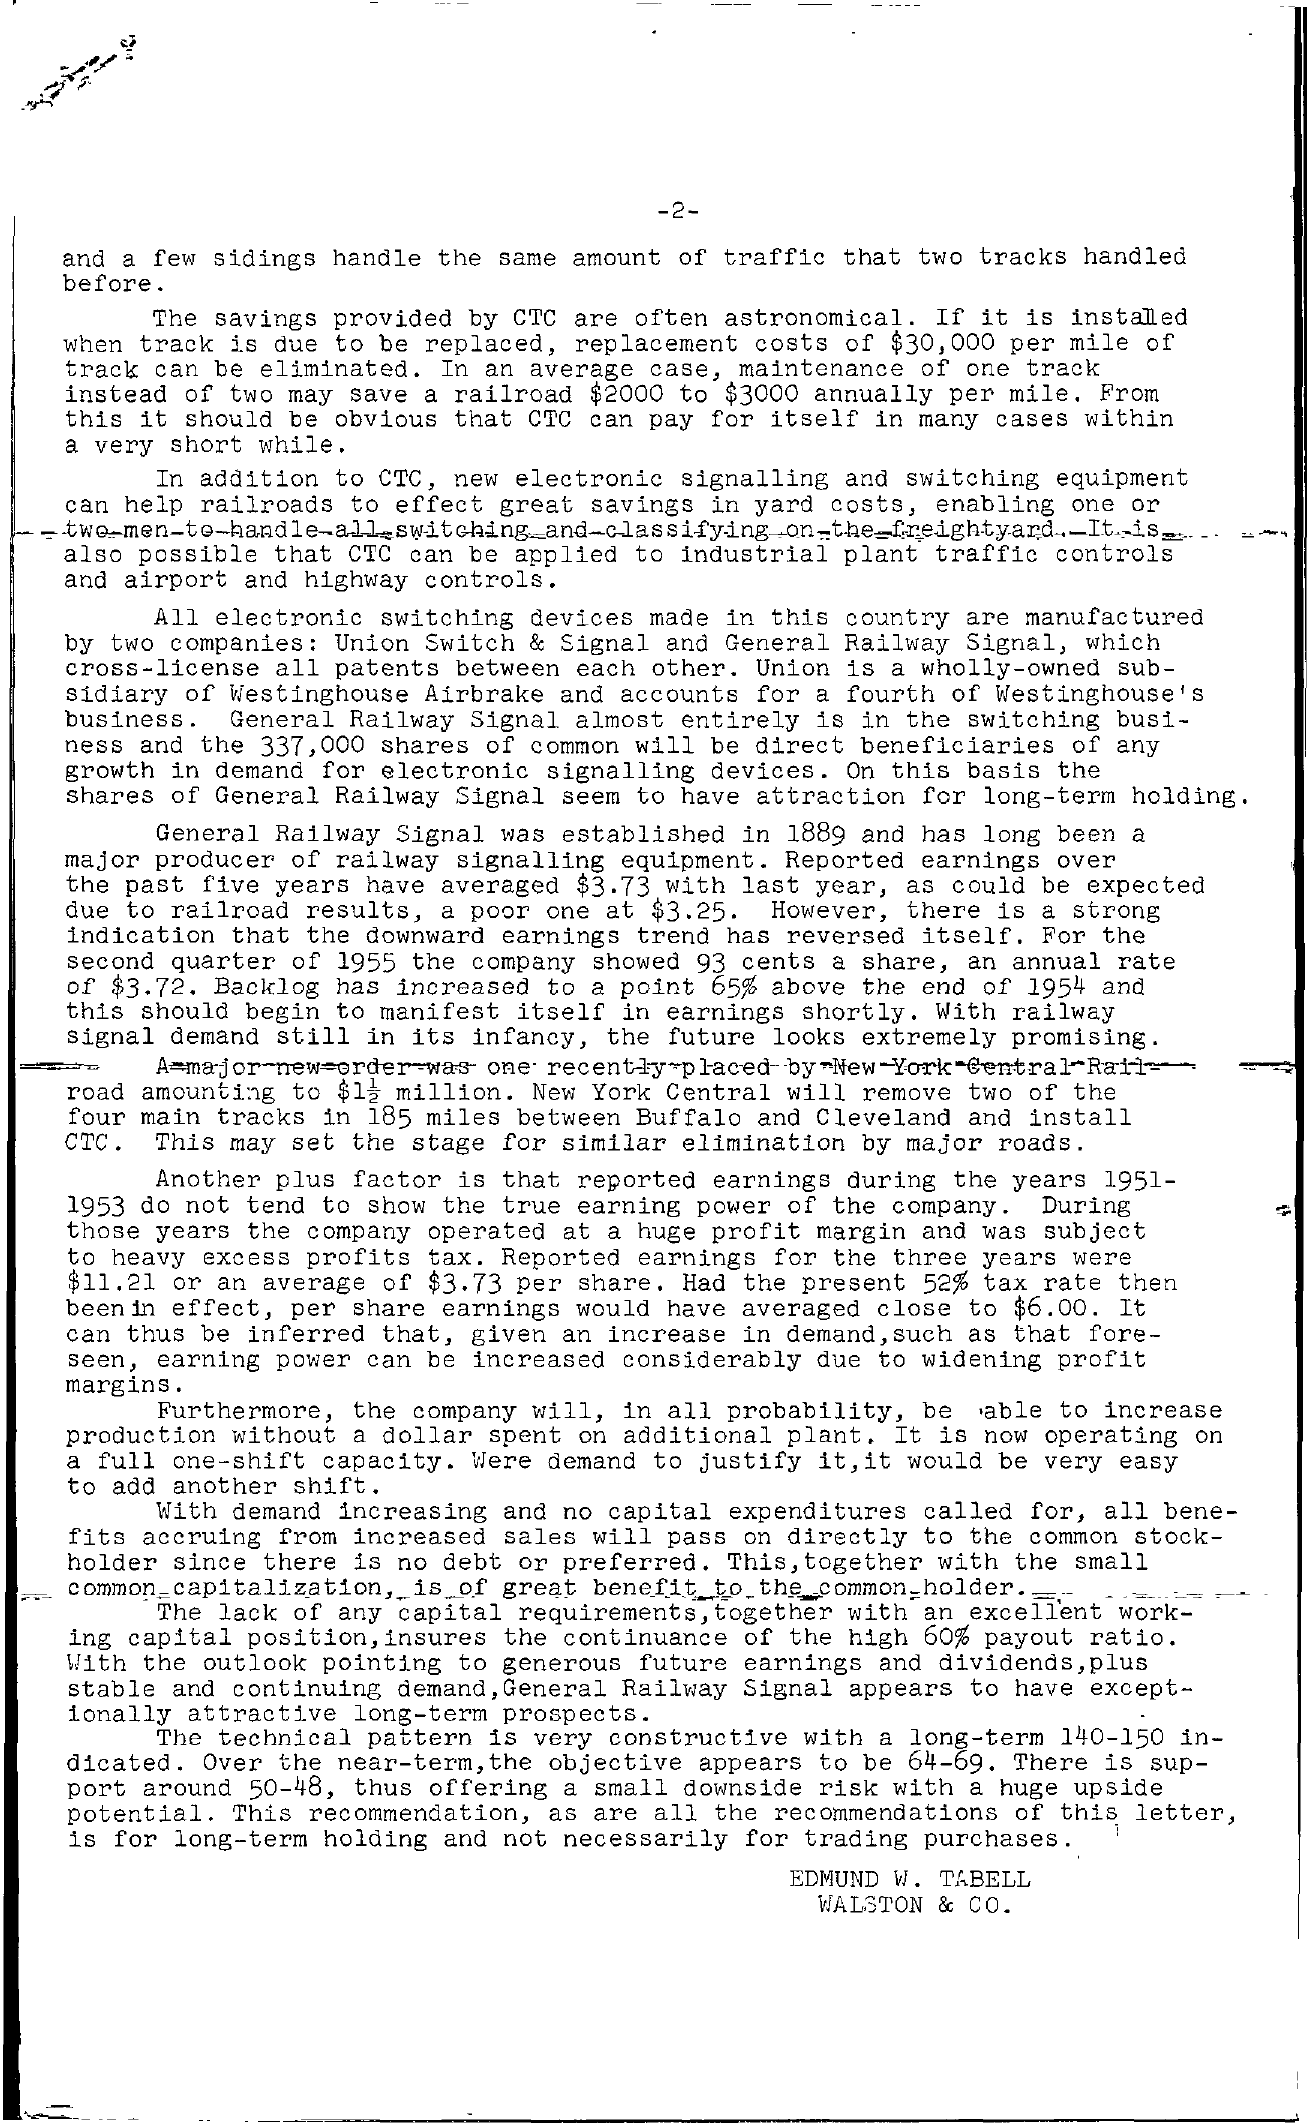 Tabell's Market Letter - September 16, 1955 page 2